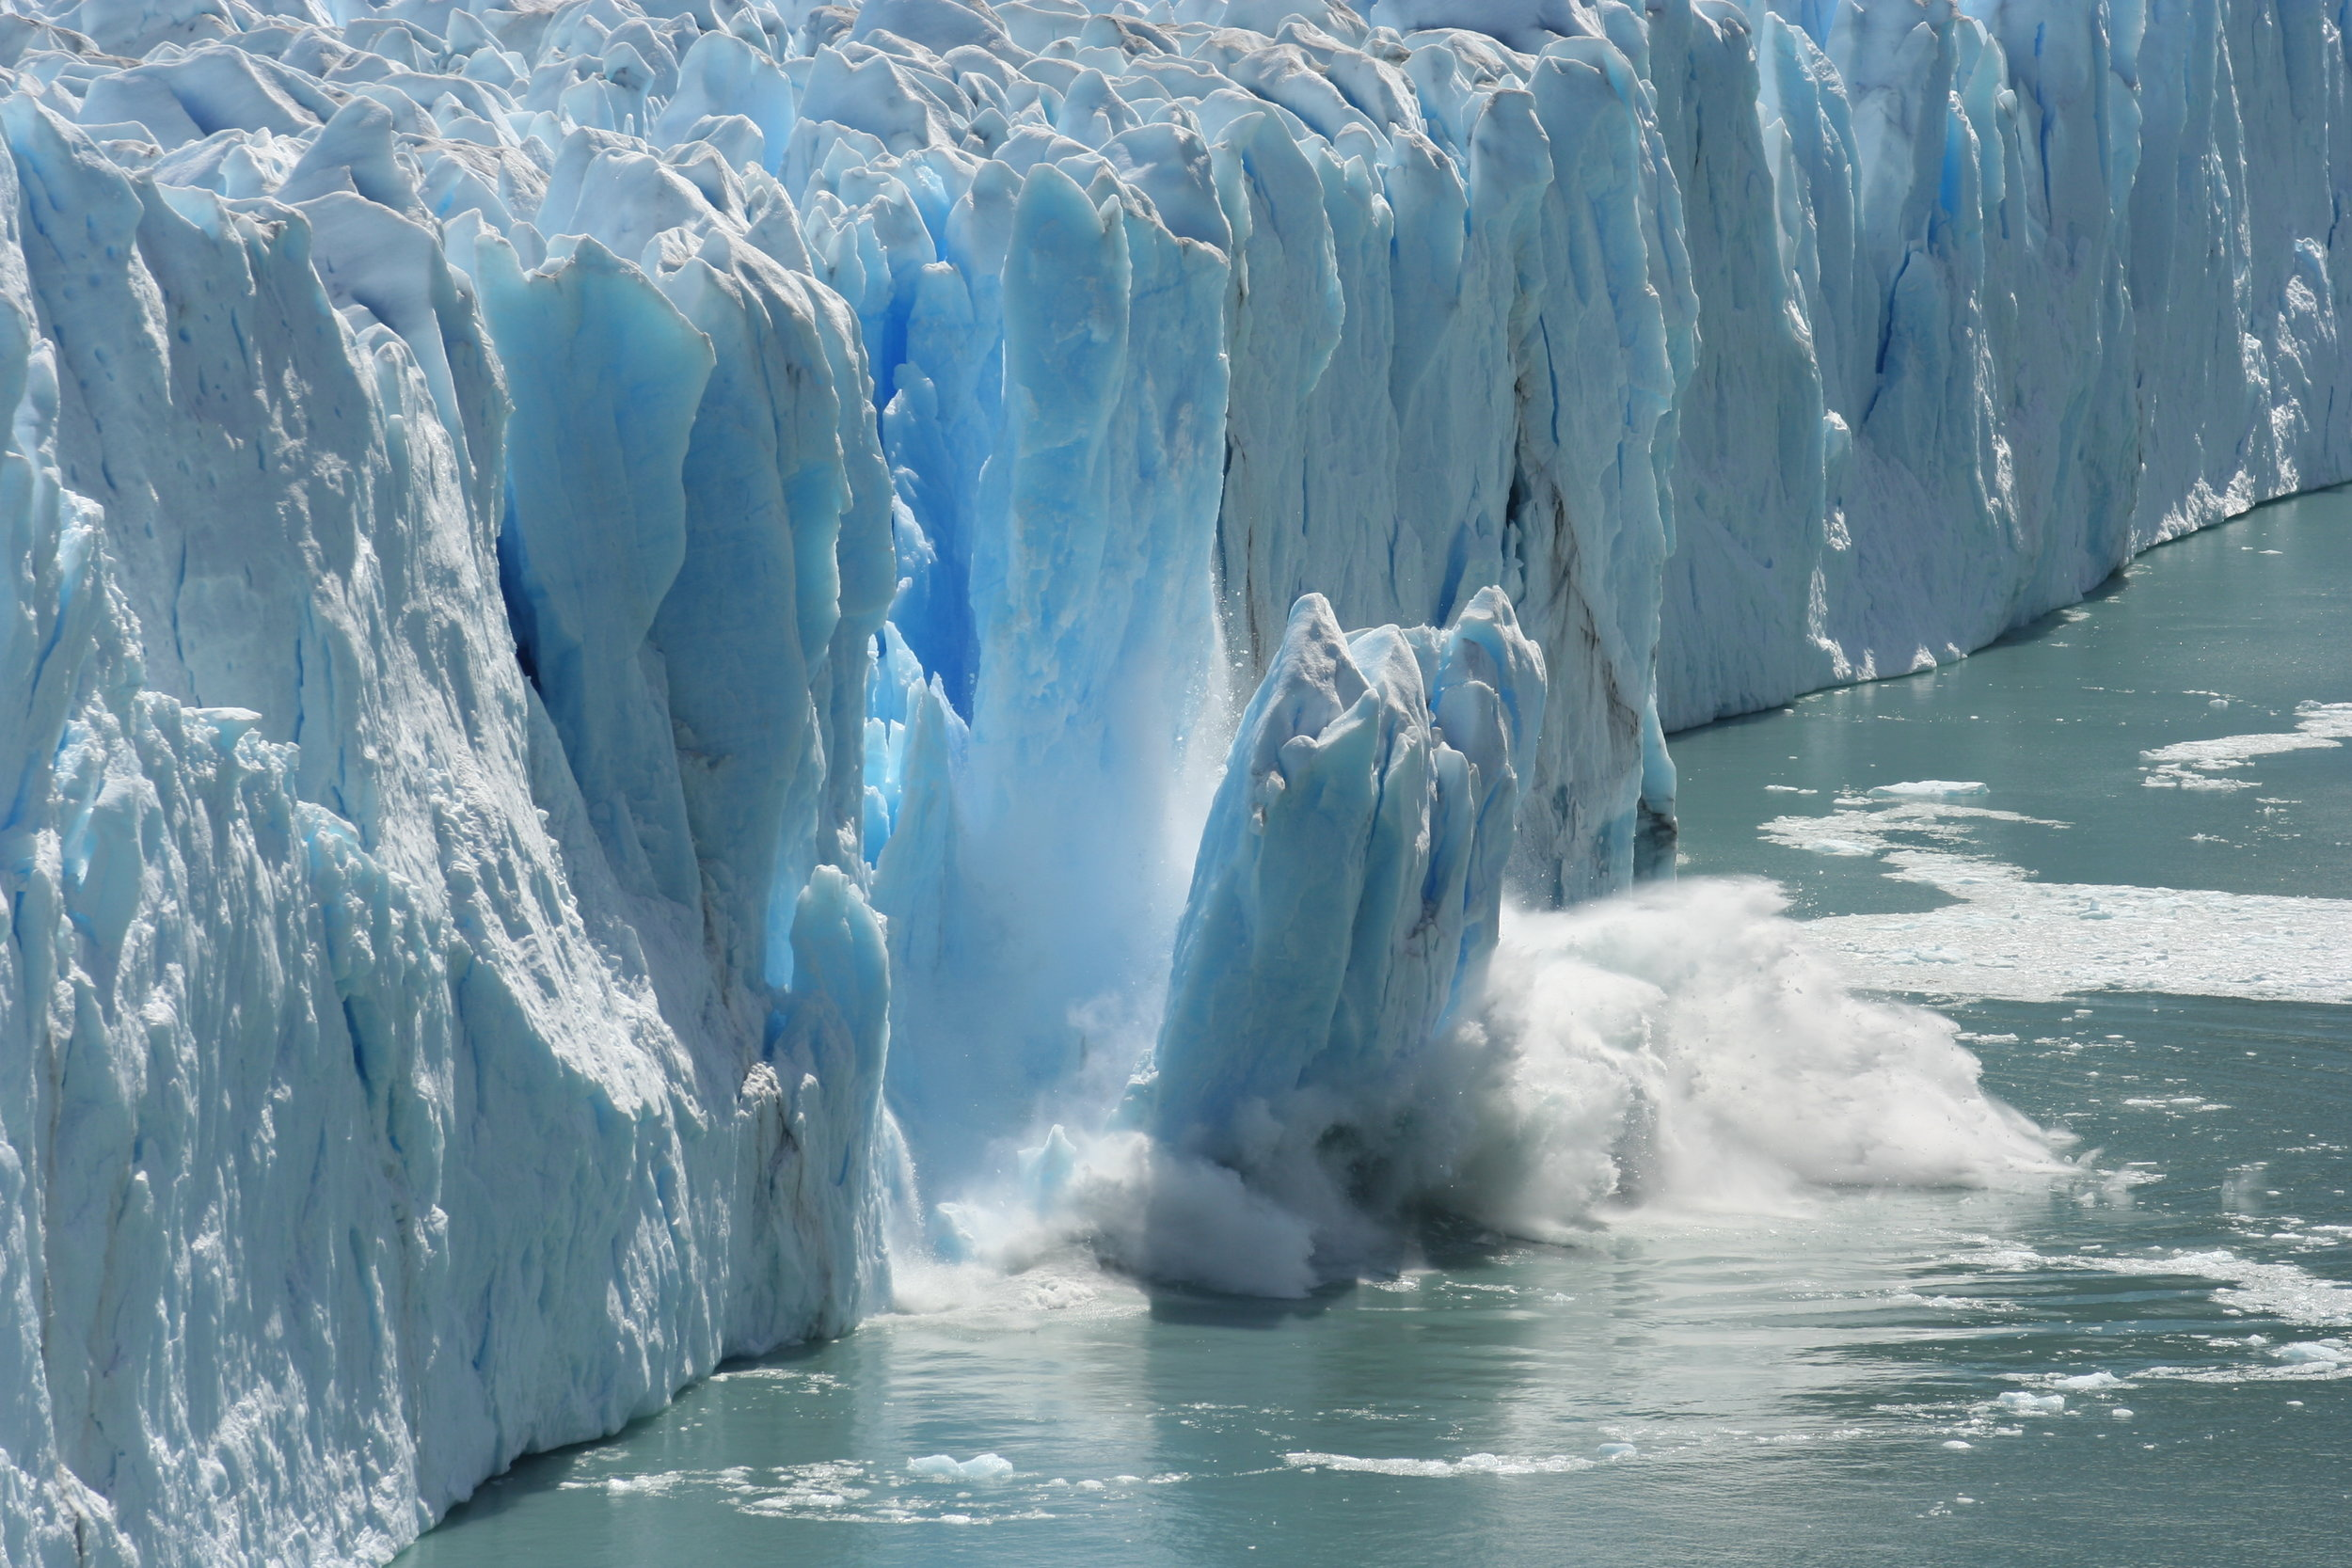 The Ice - There are 2 types of ice: sea ice (frozen ocean water) and land ice (glacial ice, including glaciers, as well as ice caps and the ice sheets). While sea ice loss does not affect global sea levels, it does affect global warming. As sea ice melts, there is less albedo, which is a measure of the amount of light that is reflected back into the atmosphere. With less white ice, more heat is absorbed by the oceans, thus contributing to temperature increase and the melting of more land ice. As land ice mass decreases, the melted water flows into the ocean, raising global sea levels.